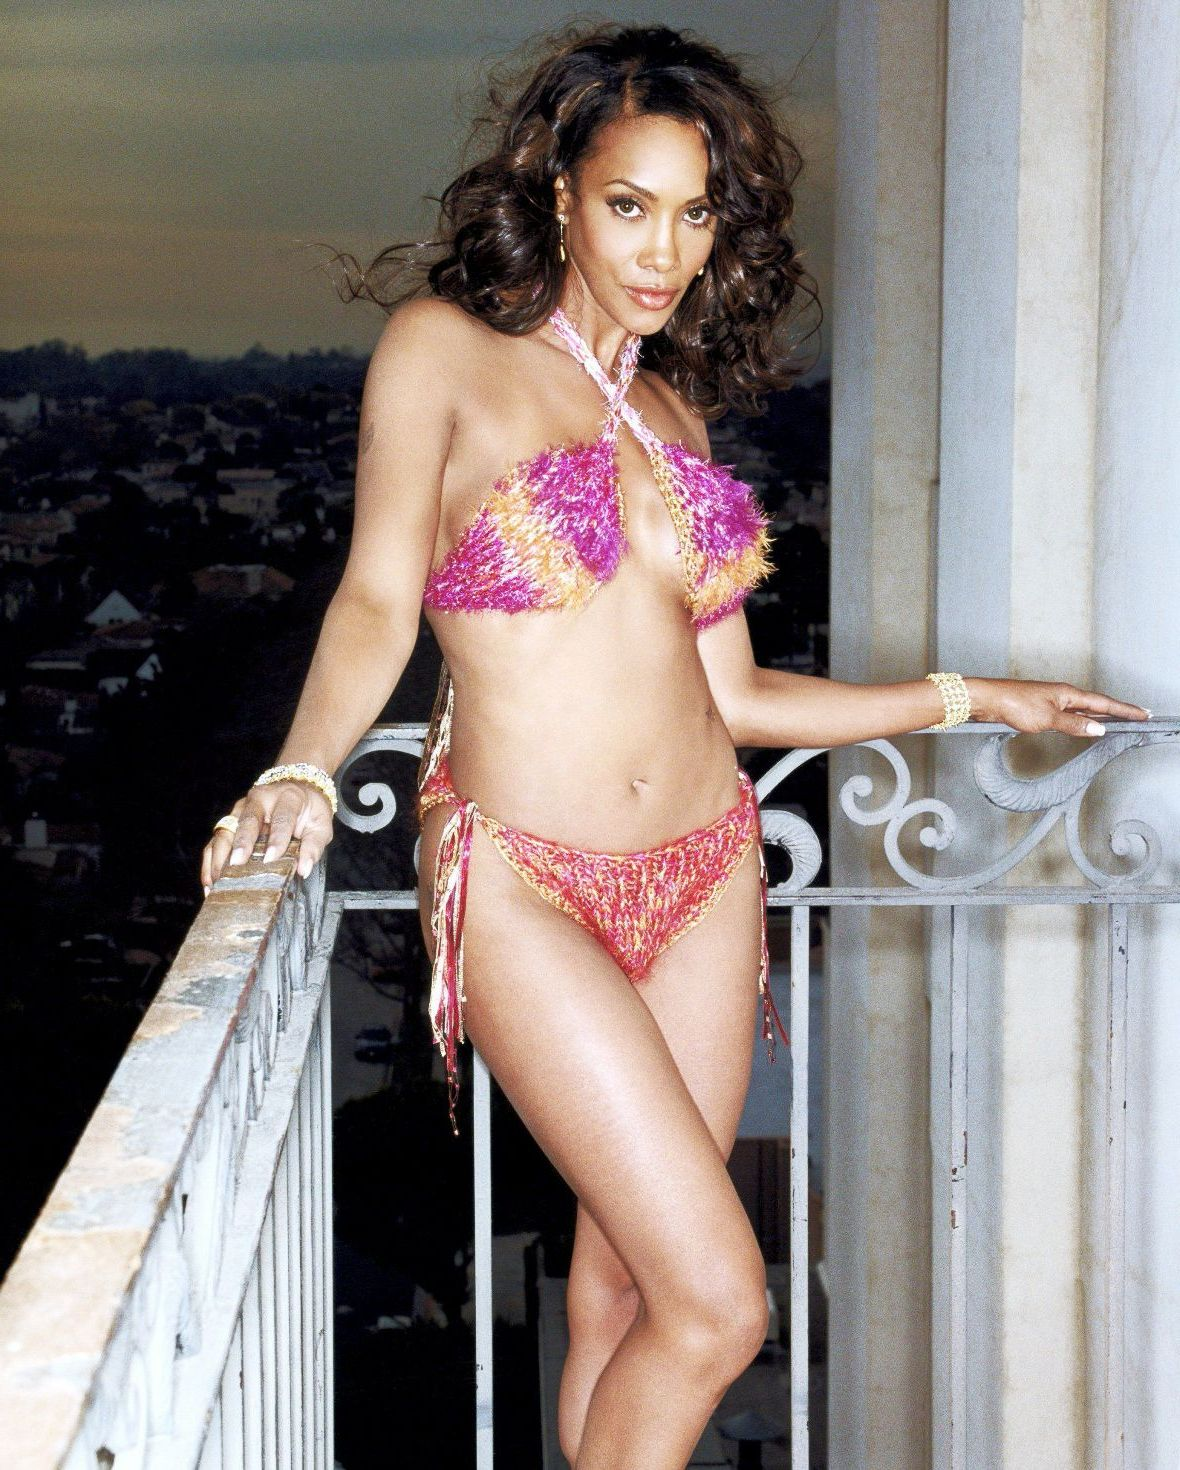 naked pictutre of vivica a. fox